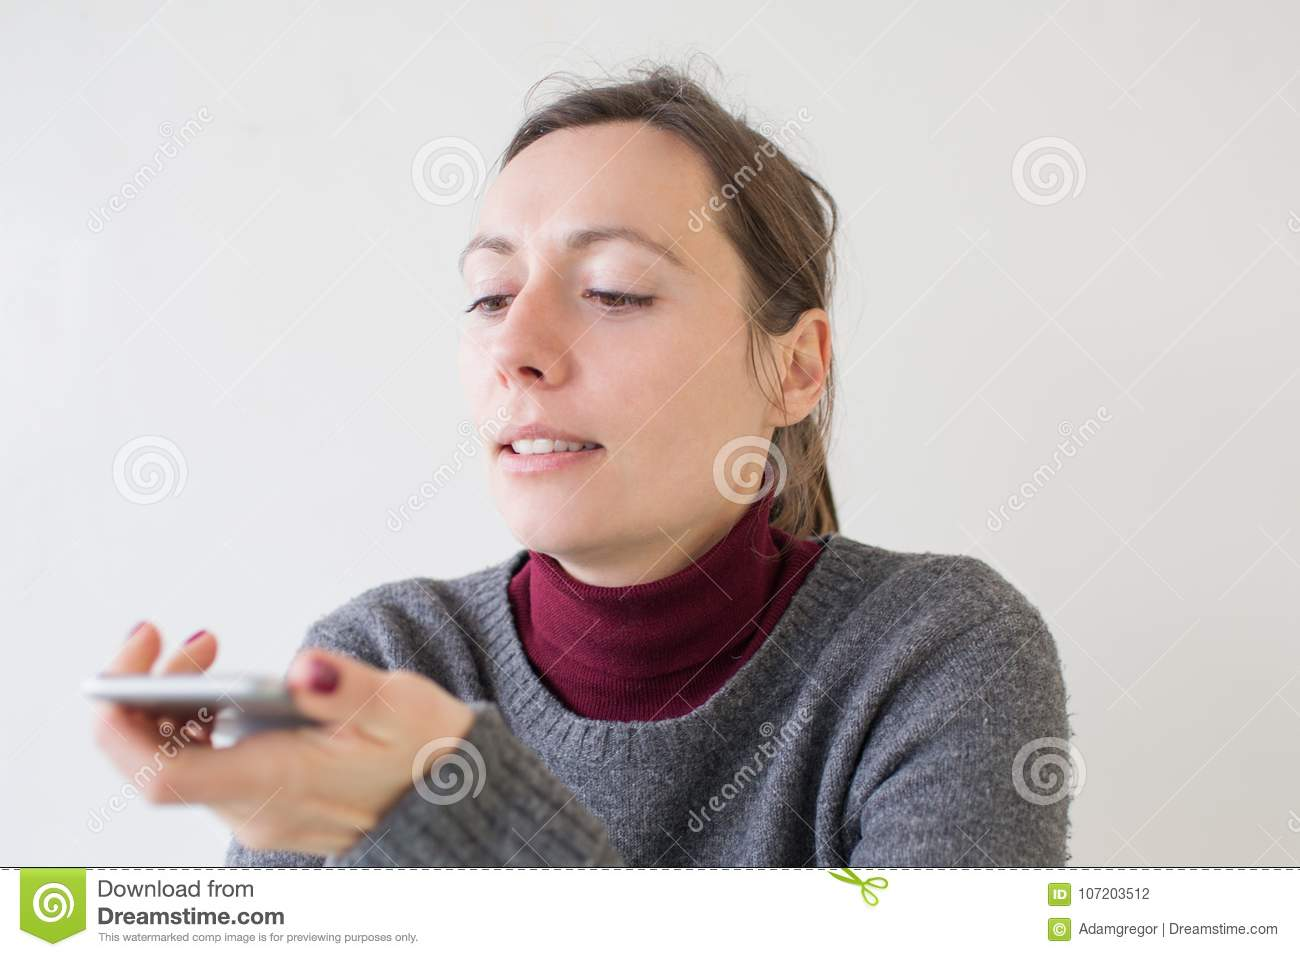 Woman leaving a voice massage on the phone